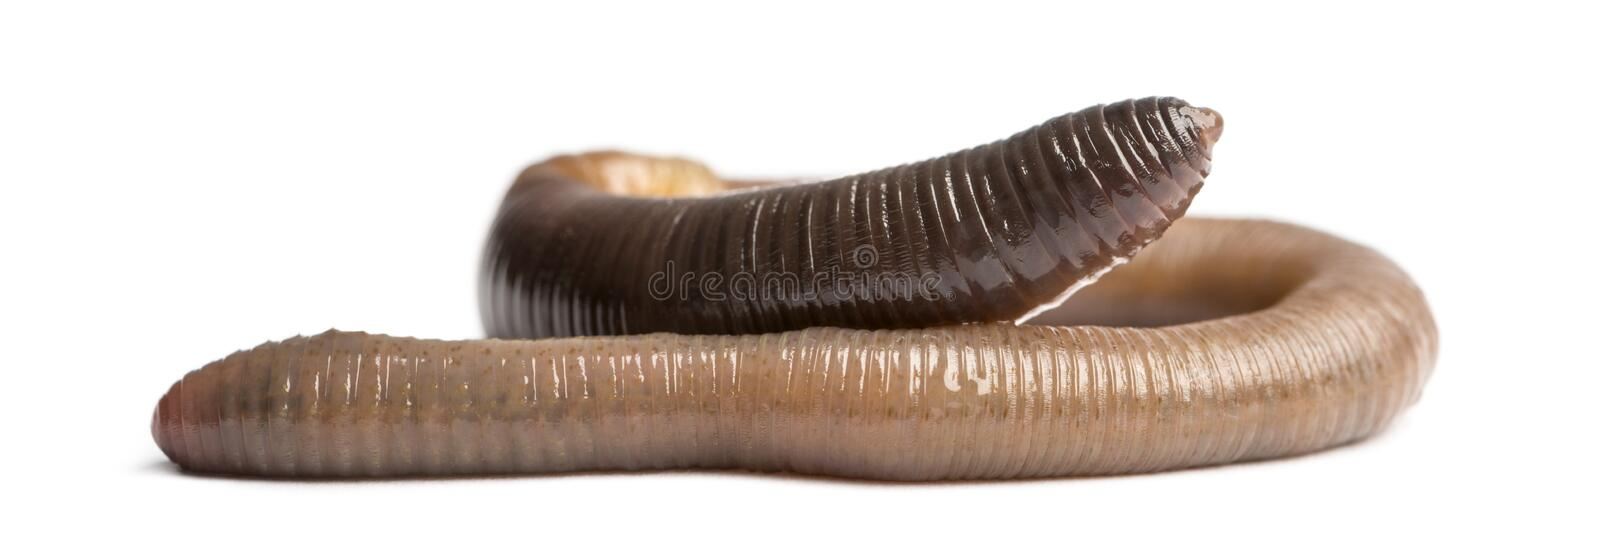 Common earthworm, Lumbricus terrestris, isolated. On white stock photo